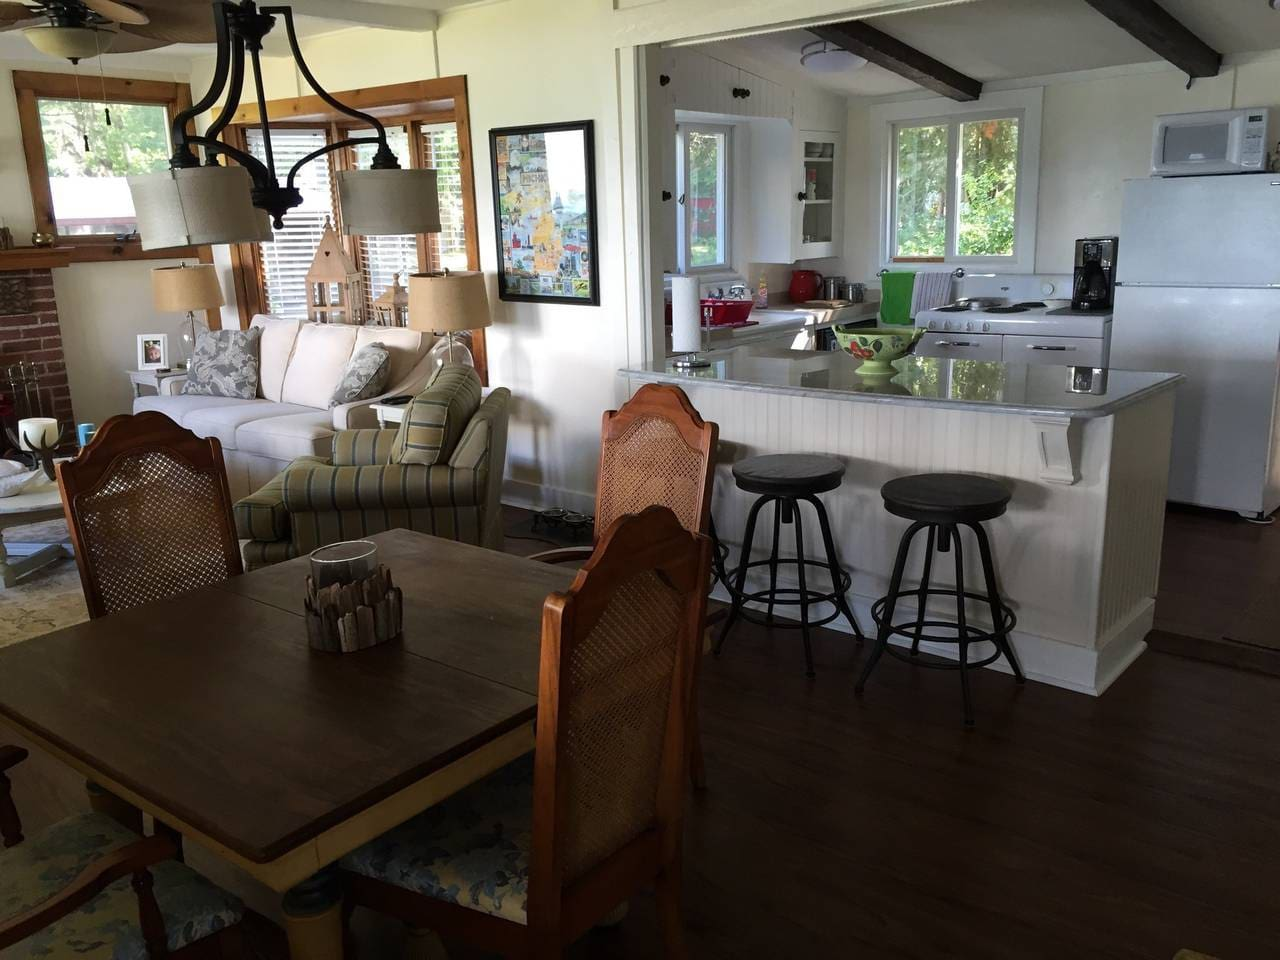 The cottage has an open floor plan with the living room, dining area and kitchen together.